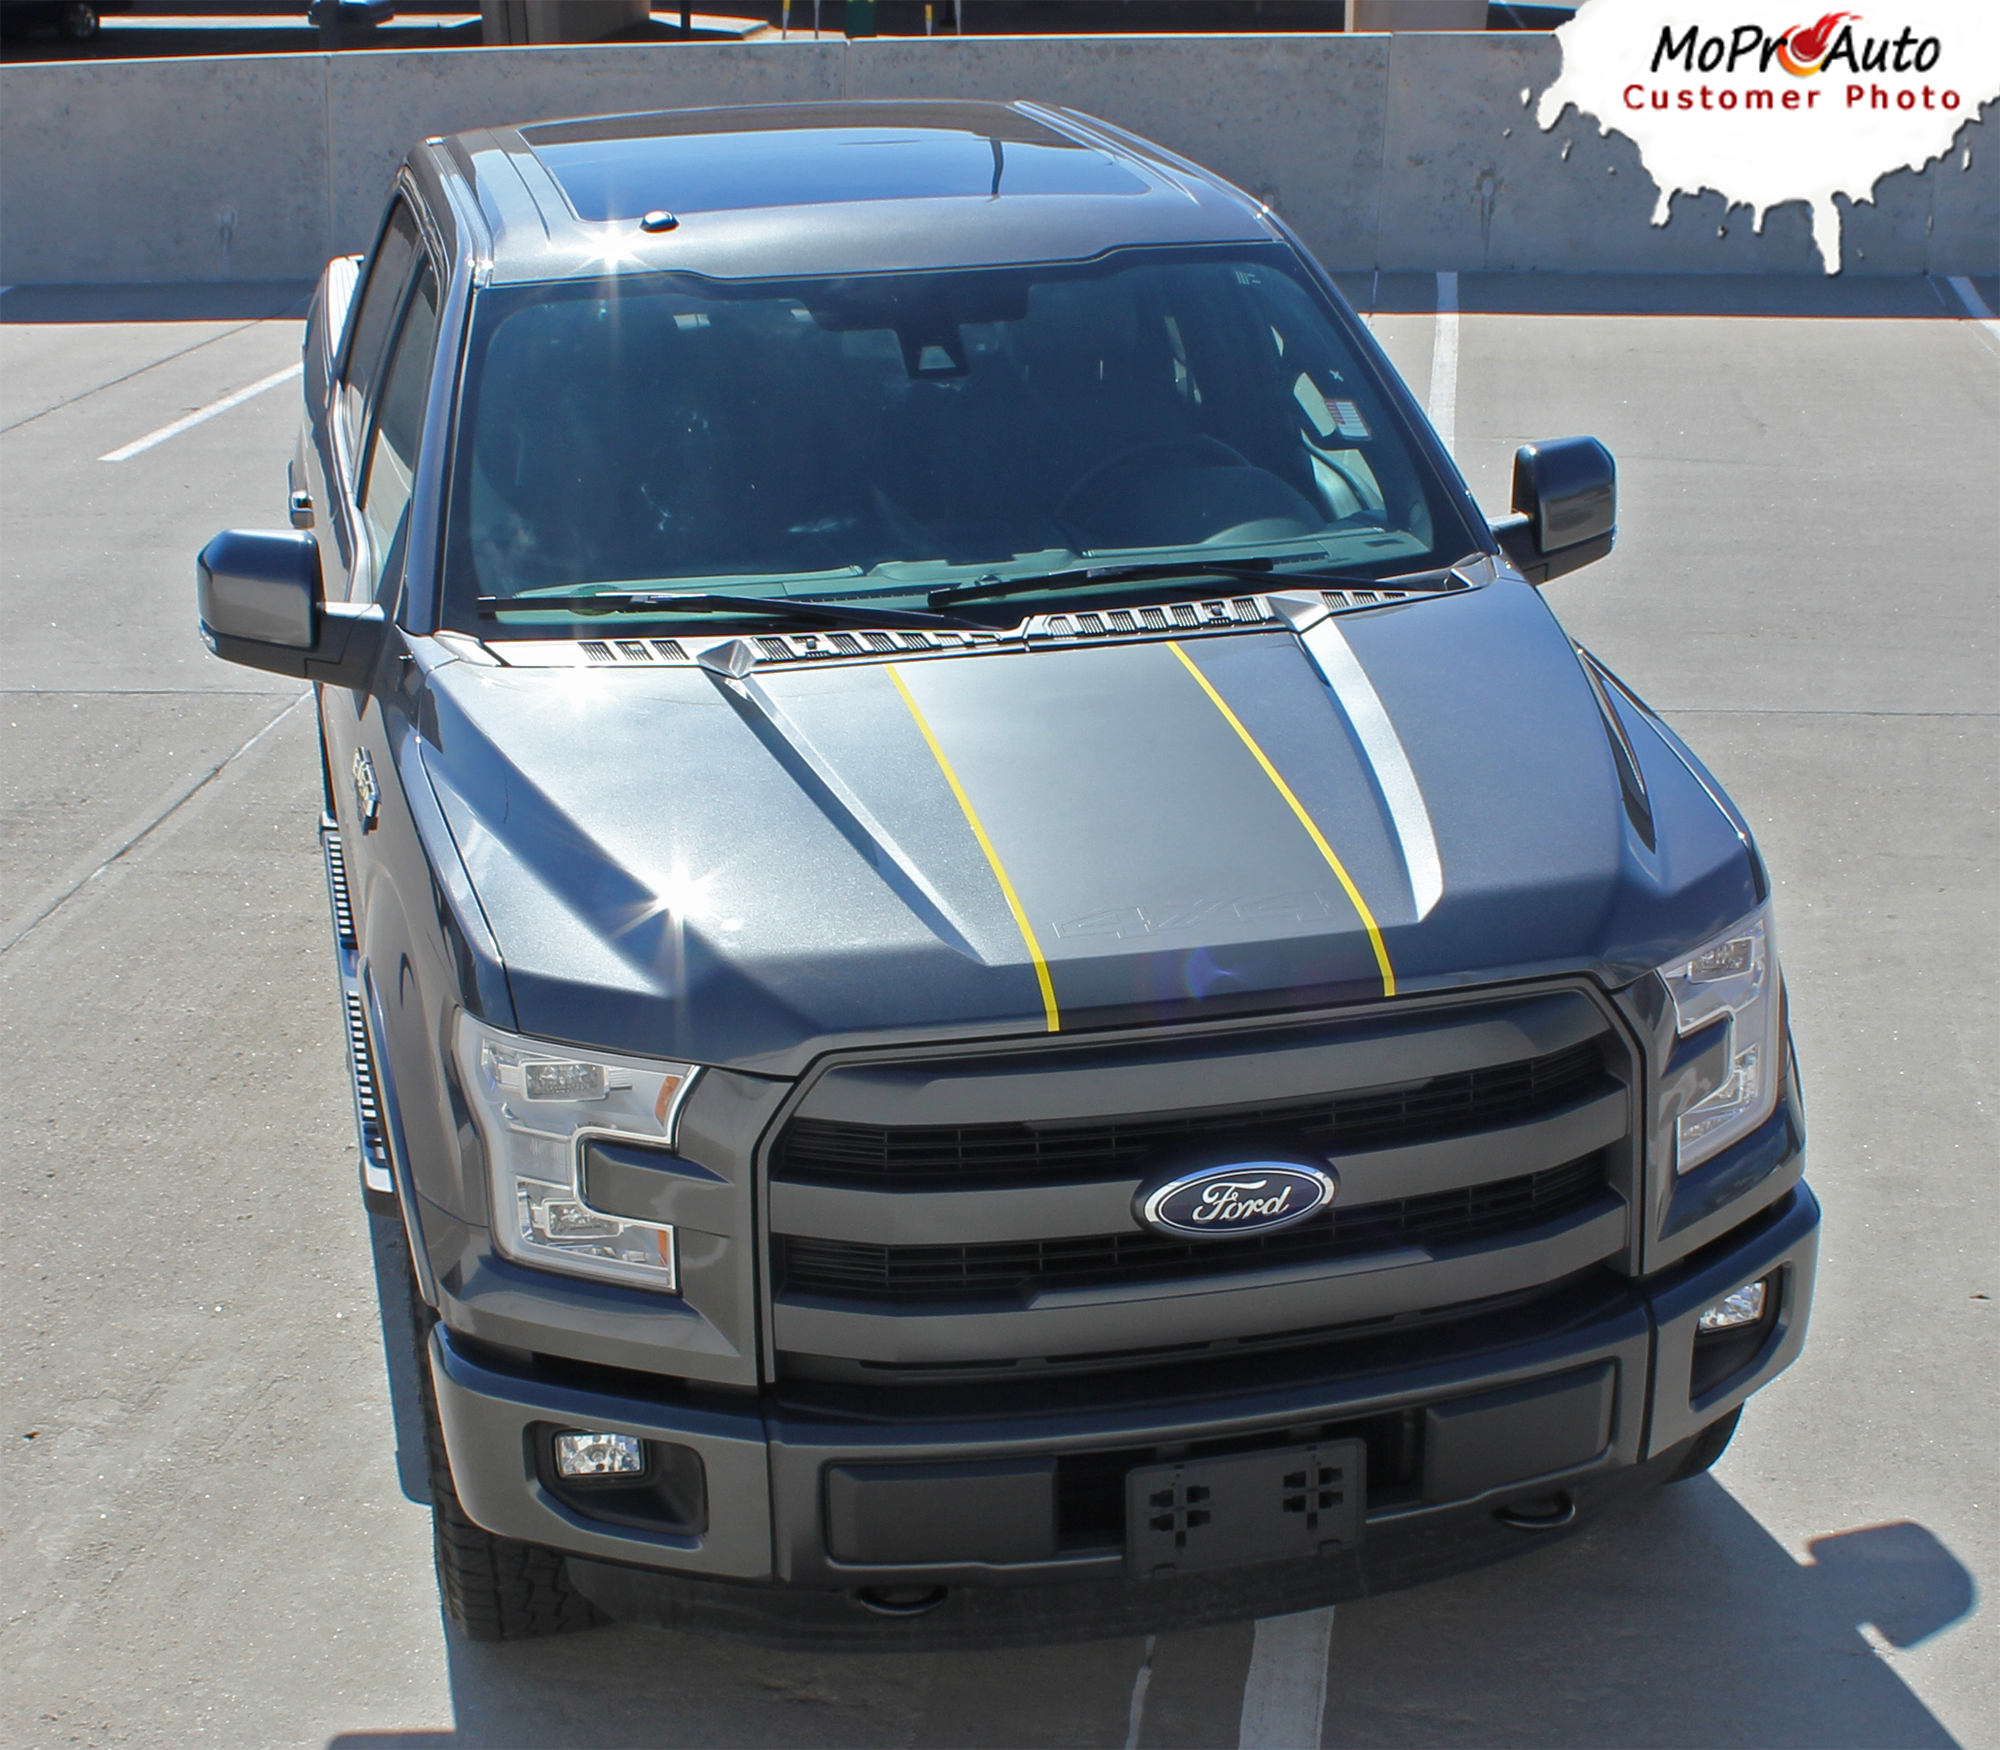 2015, 2016, 2017, 2018, 2019, 2020 Ford F-Series F-150 - MoProAuto Pro Design Series Vinyl Graphics and Decals Kit